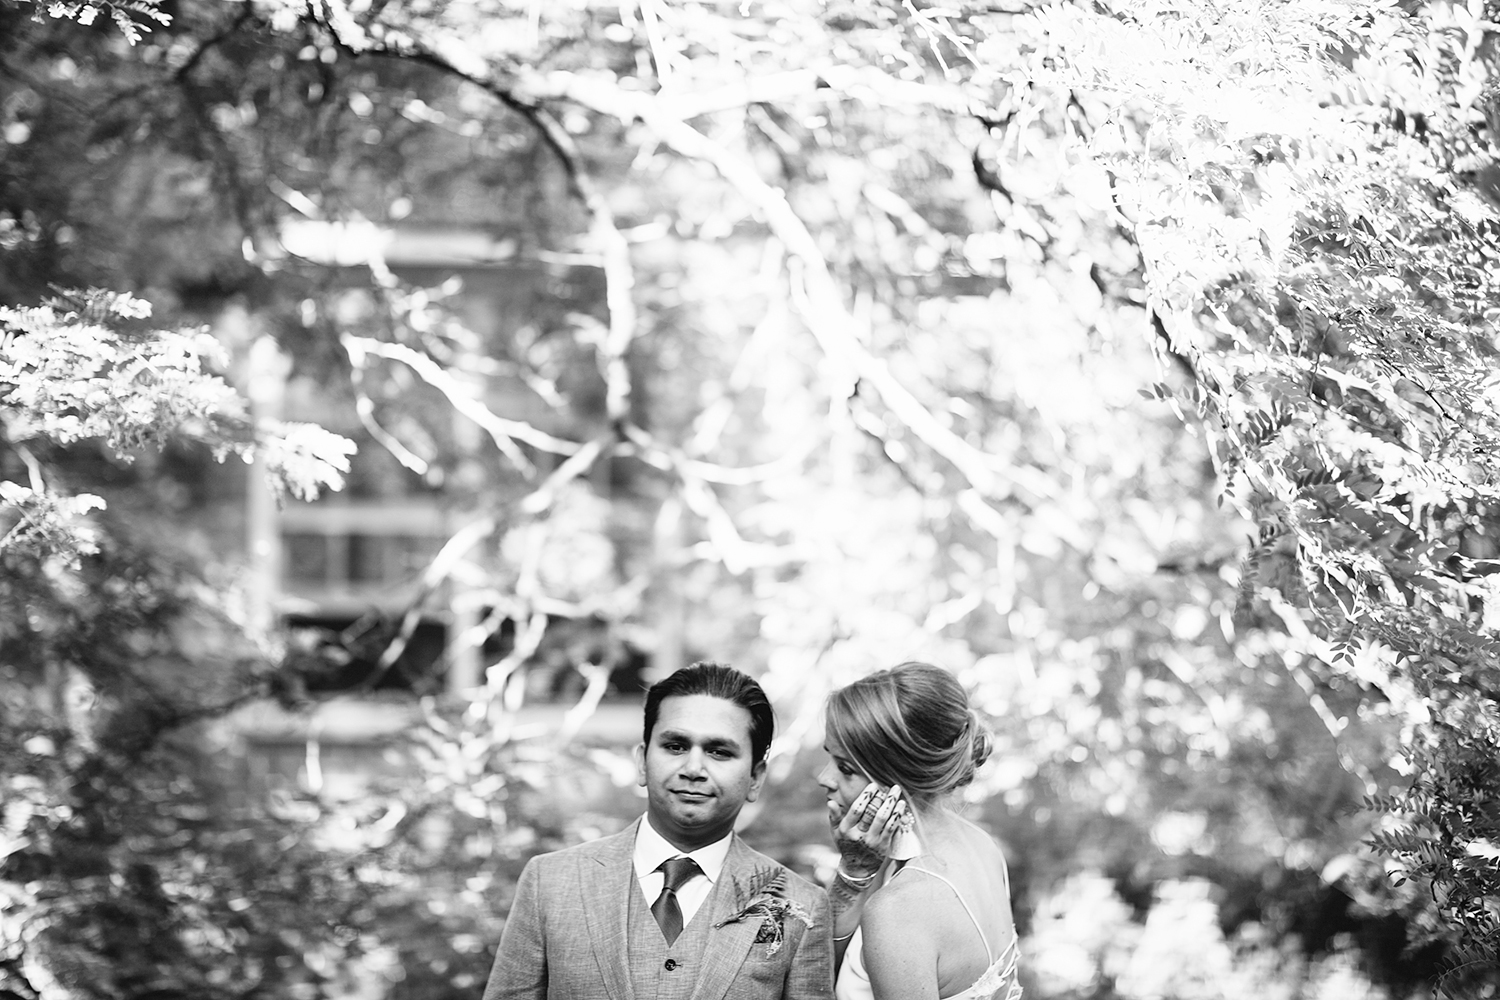 Best-Film-Wedding-Photographers-Toronto-Kodak-Trix-35mm-Analog-Wedding-Photography-Ontario-Canada-Small-town-coutry-wedding-couple-candid-portraits-intimate-documentary-fine-art-aesthetic-lifestyle-in-trees.jpg